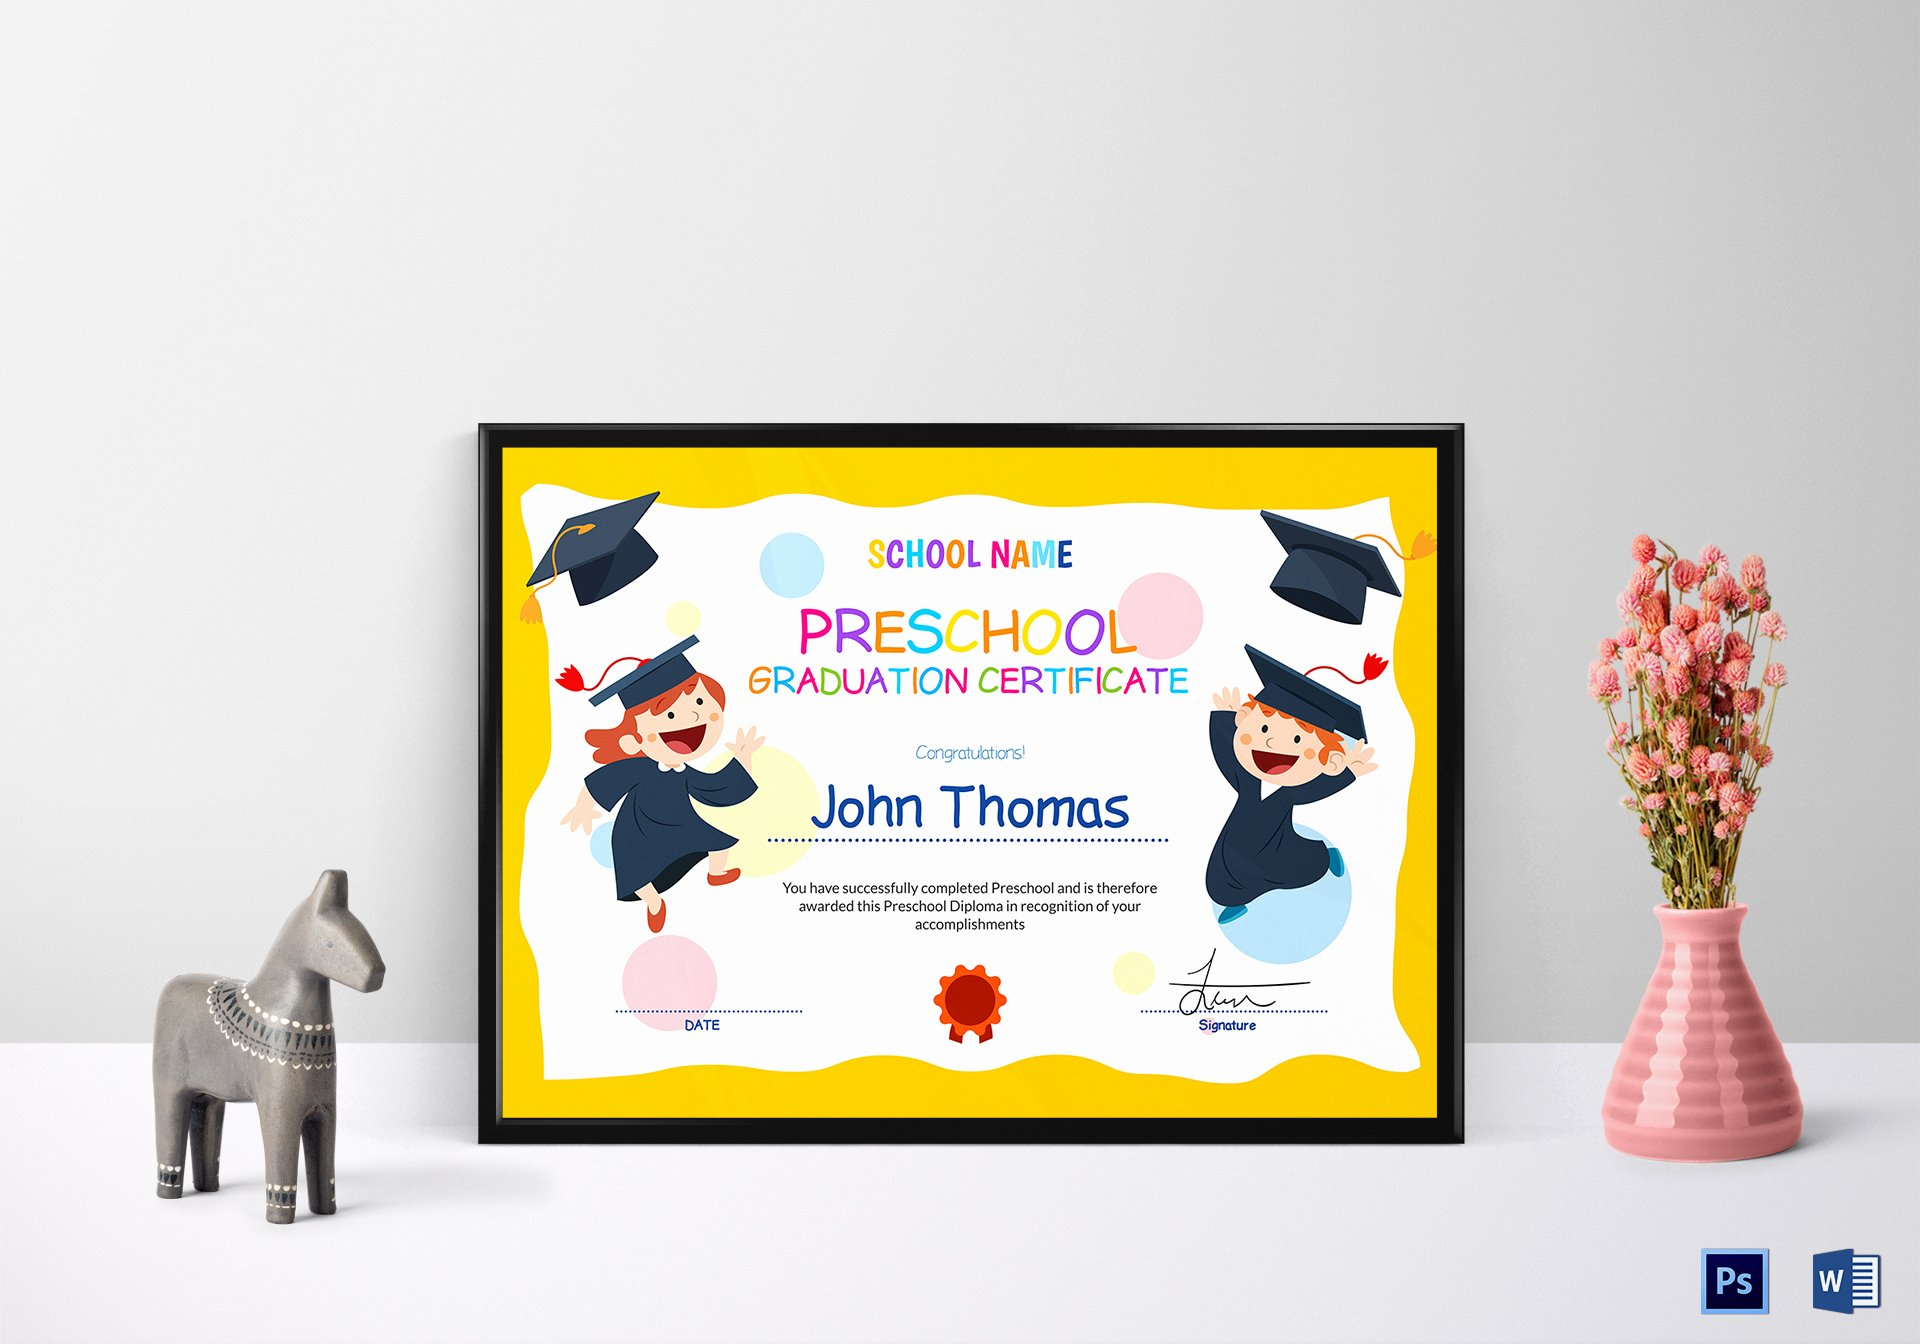 Kindergarten Graduation Certificate Template Awesome Preschool Graduation Certificate Design Template In Psd Word